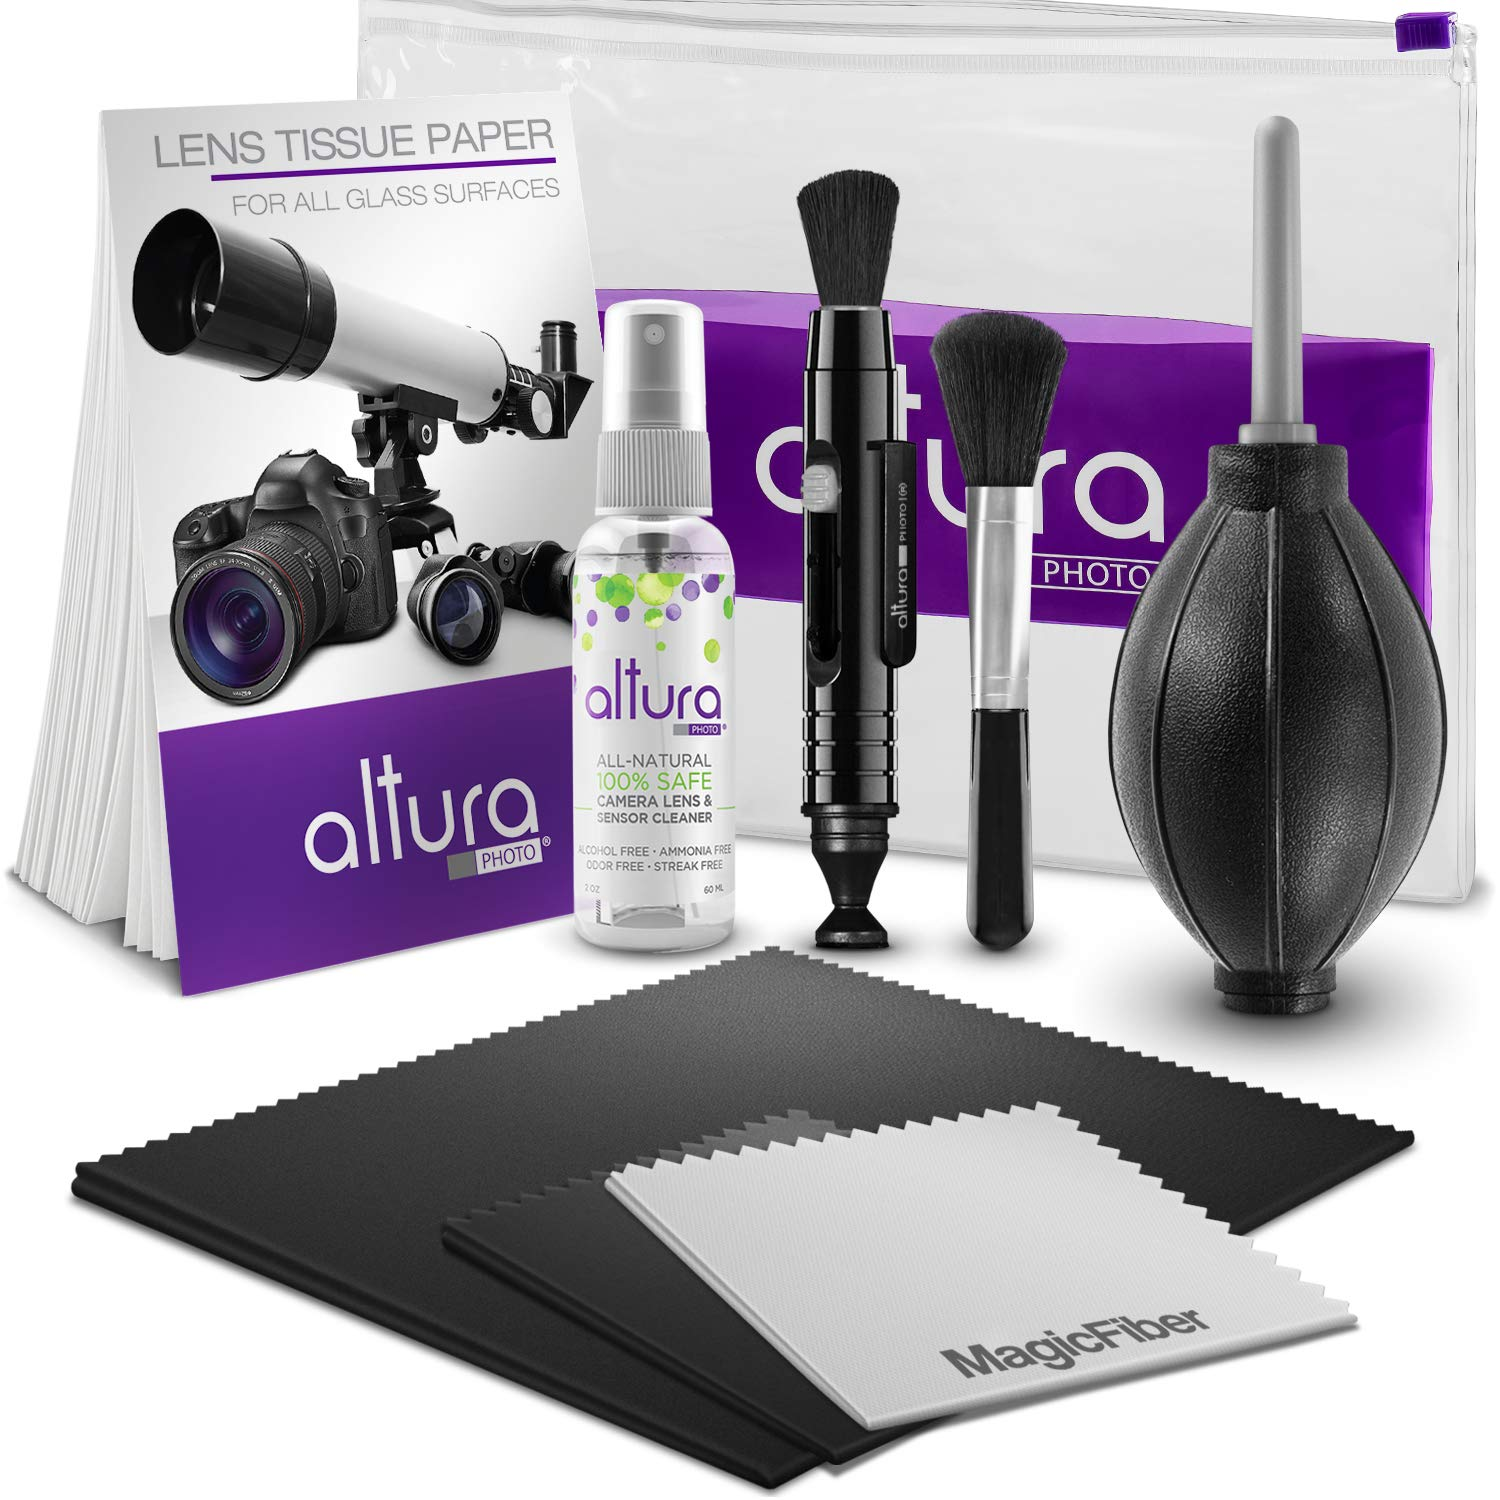 Altura Photo Professional Cleaning Kit for DSLR Cameras and Sensitive Electronics Bundle with Altura Photo 2oz All Natural Cleaning Solution by Altura Photo